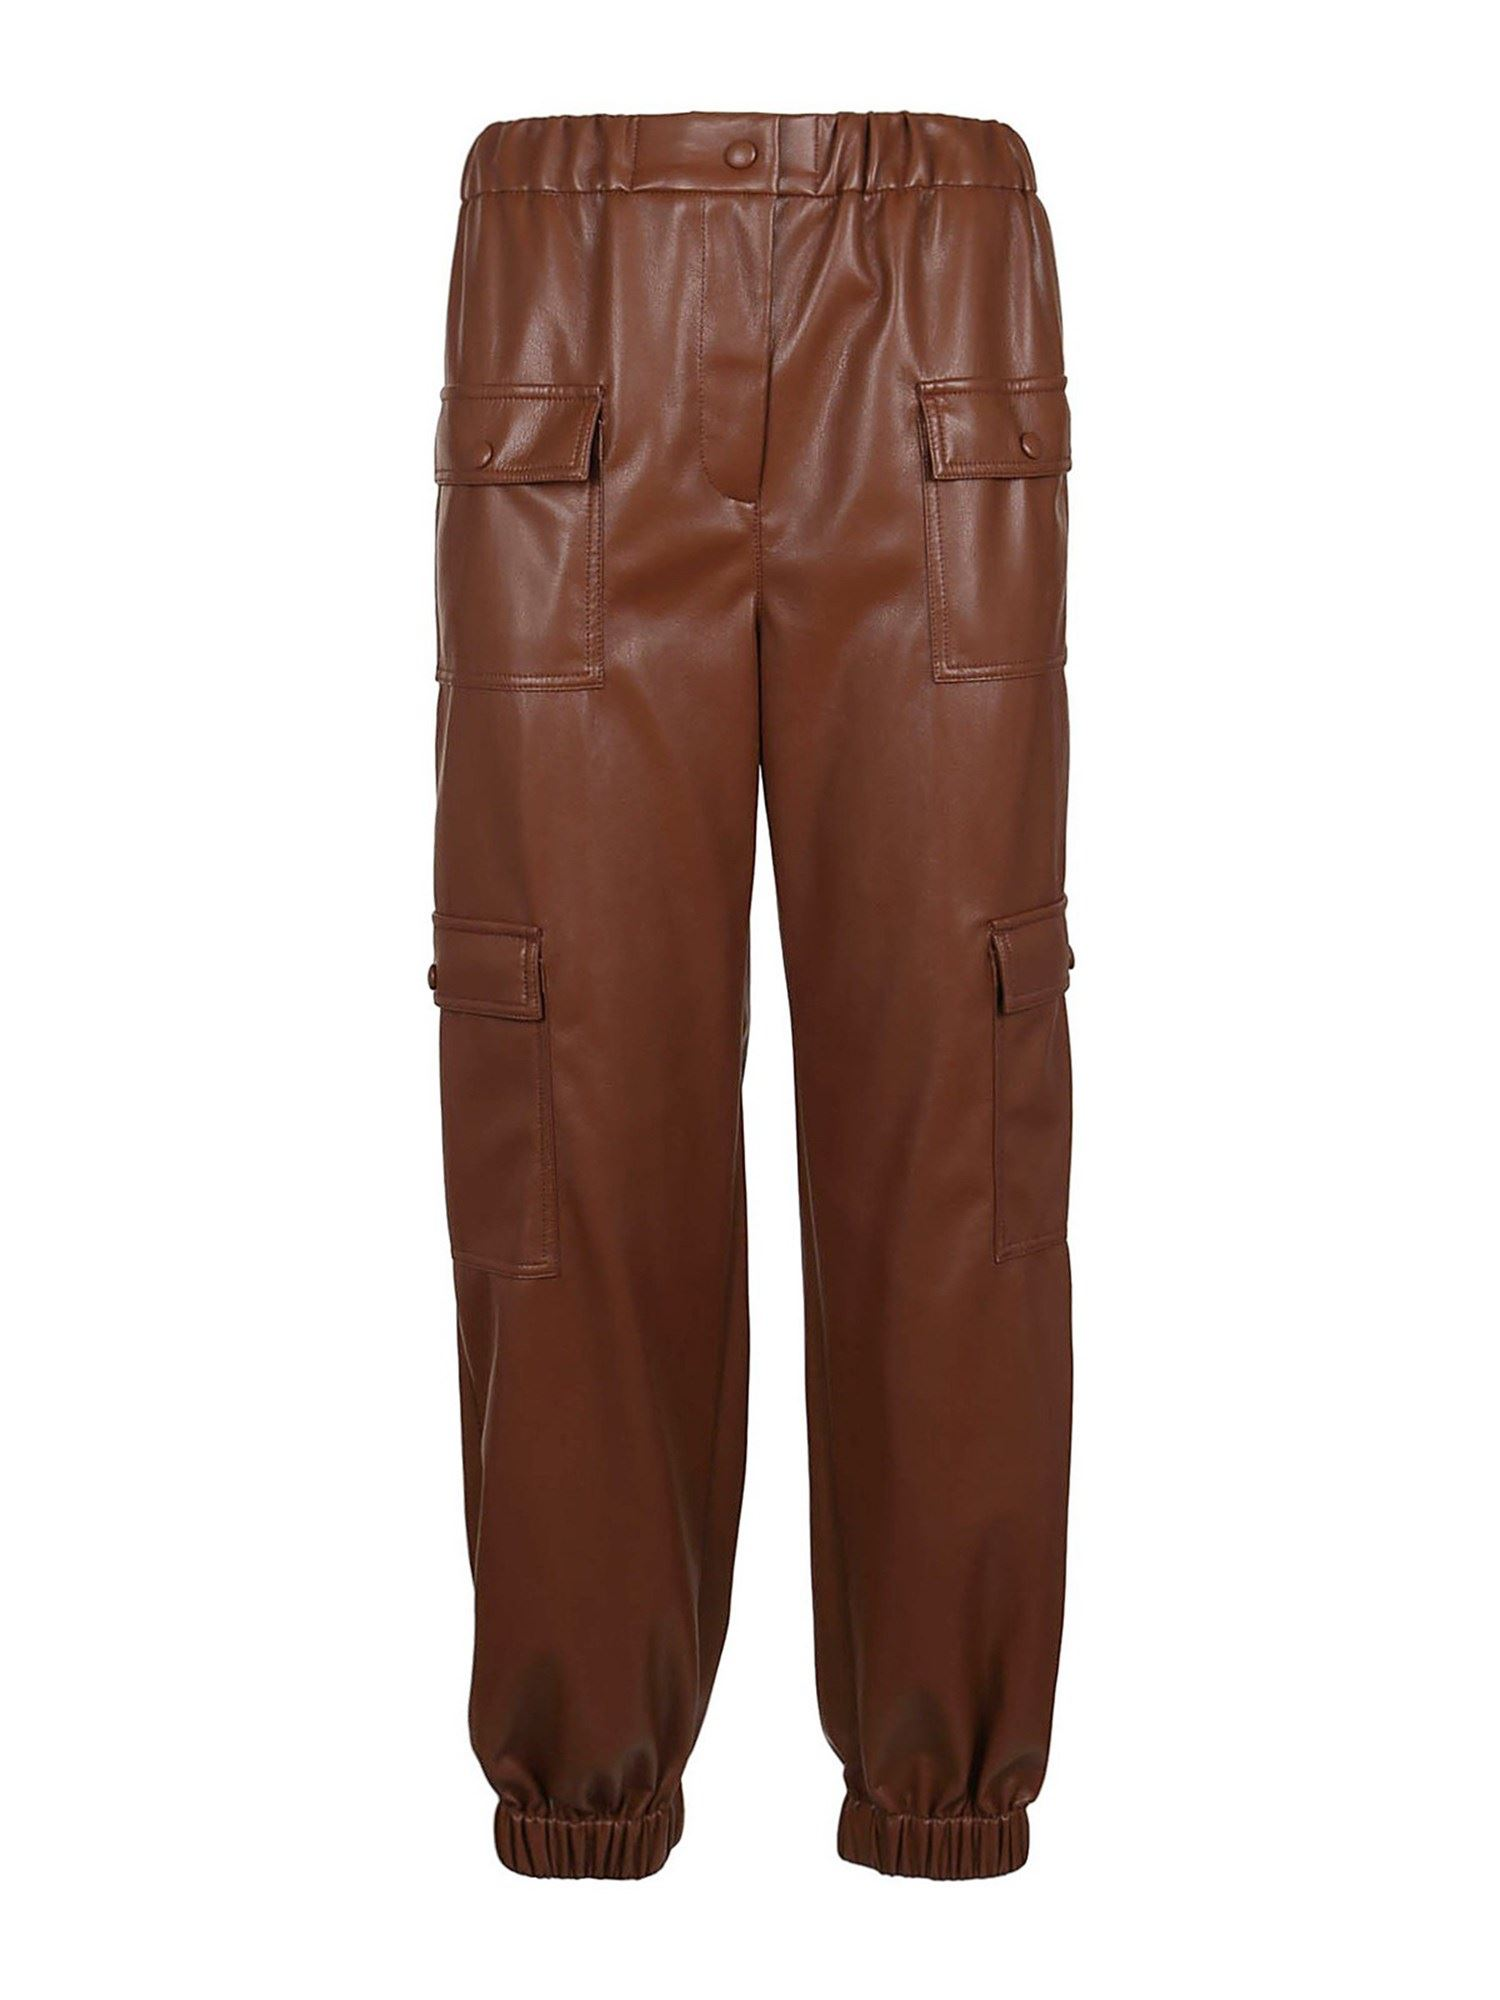 Msgm Leathers FAUX LEATHER CARGO PANTS IN BROWN